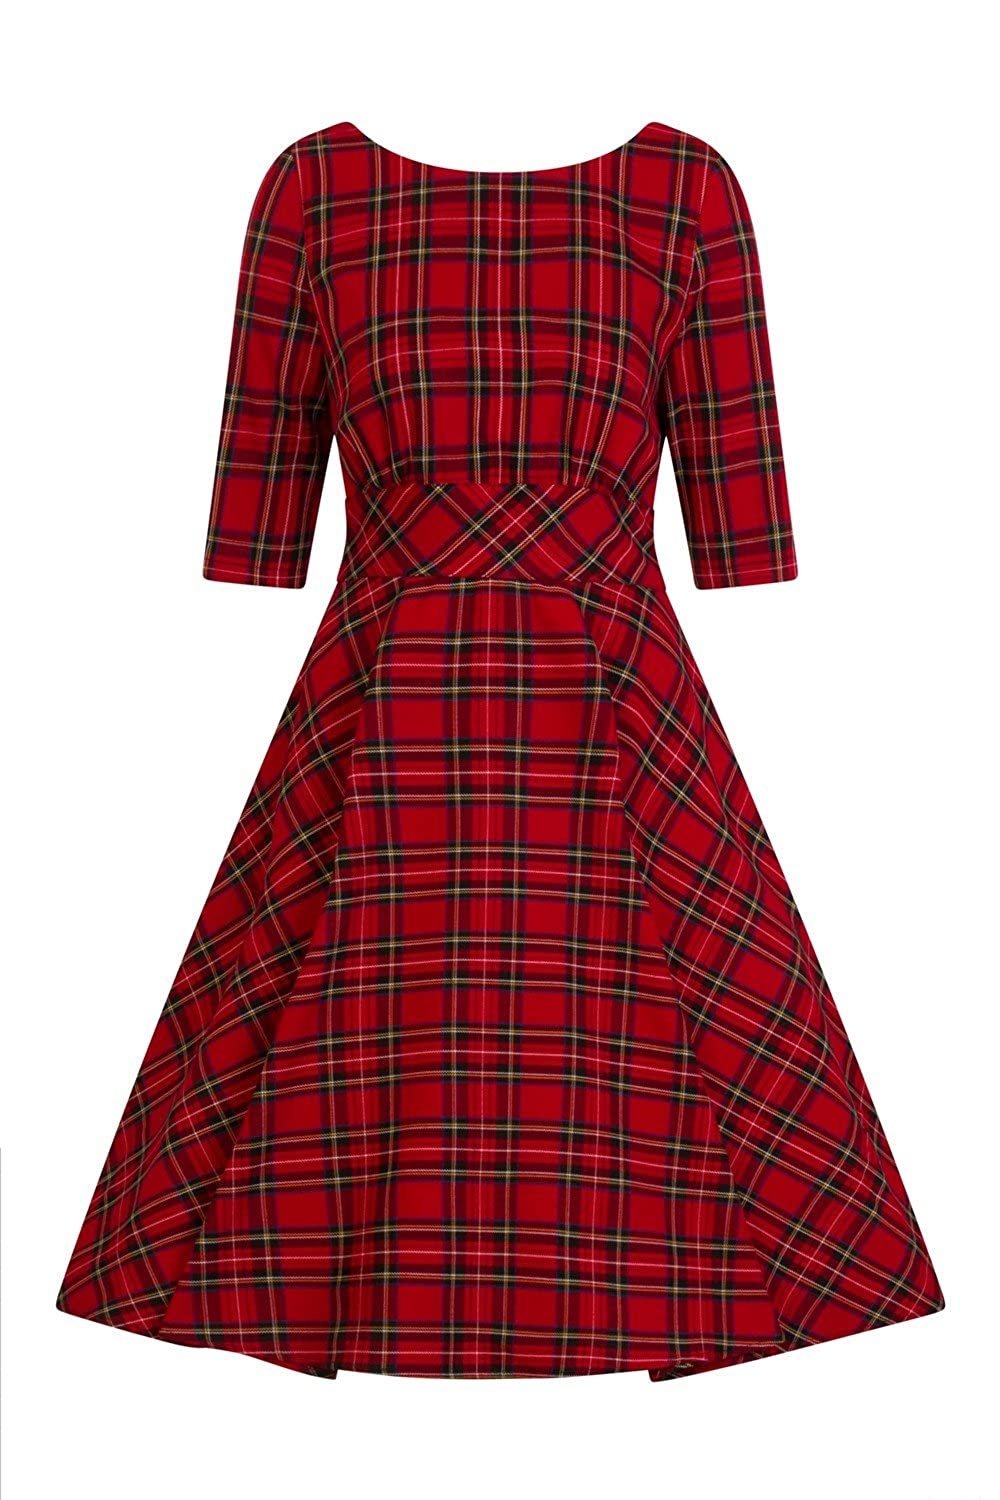 1950s Dresses, 50s Dresses | 1950s Style Dresses Hell Bunny Irvine Tartan 1950s Vintage Retro Dress XS-4XL $72.99 AT vintagedancer.com